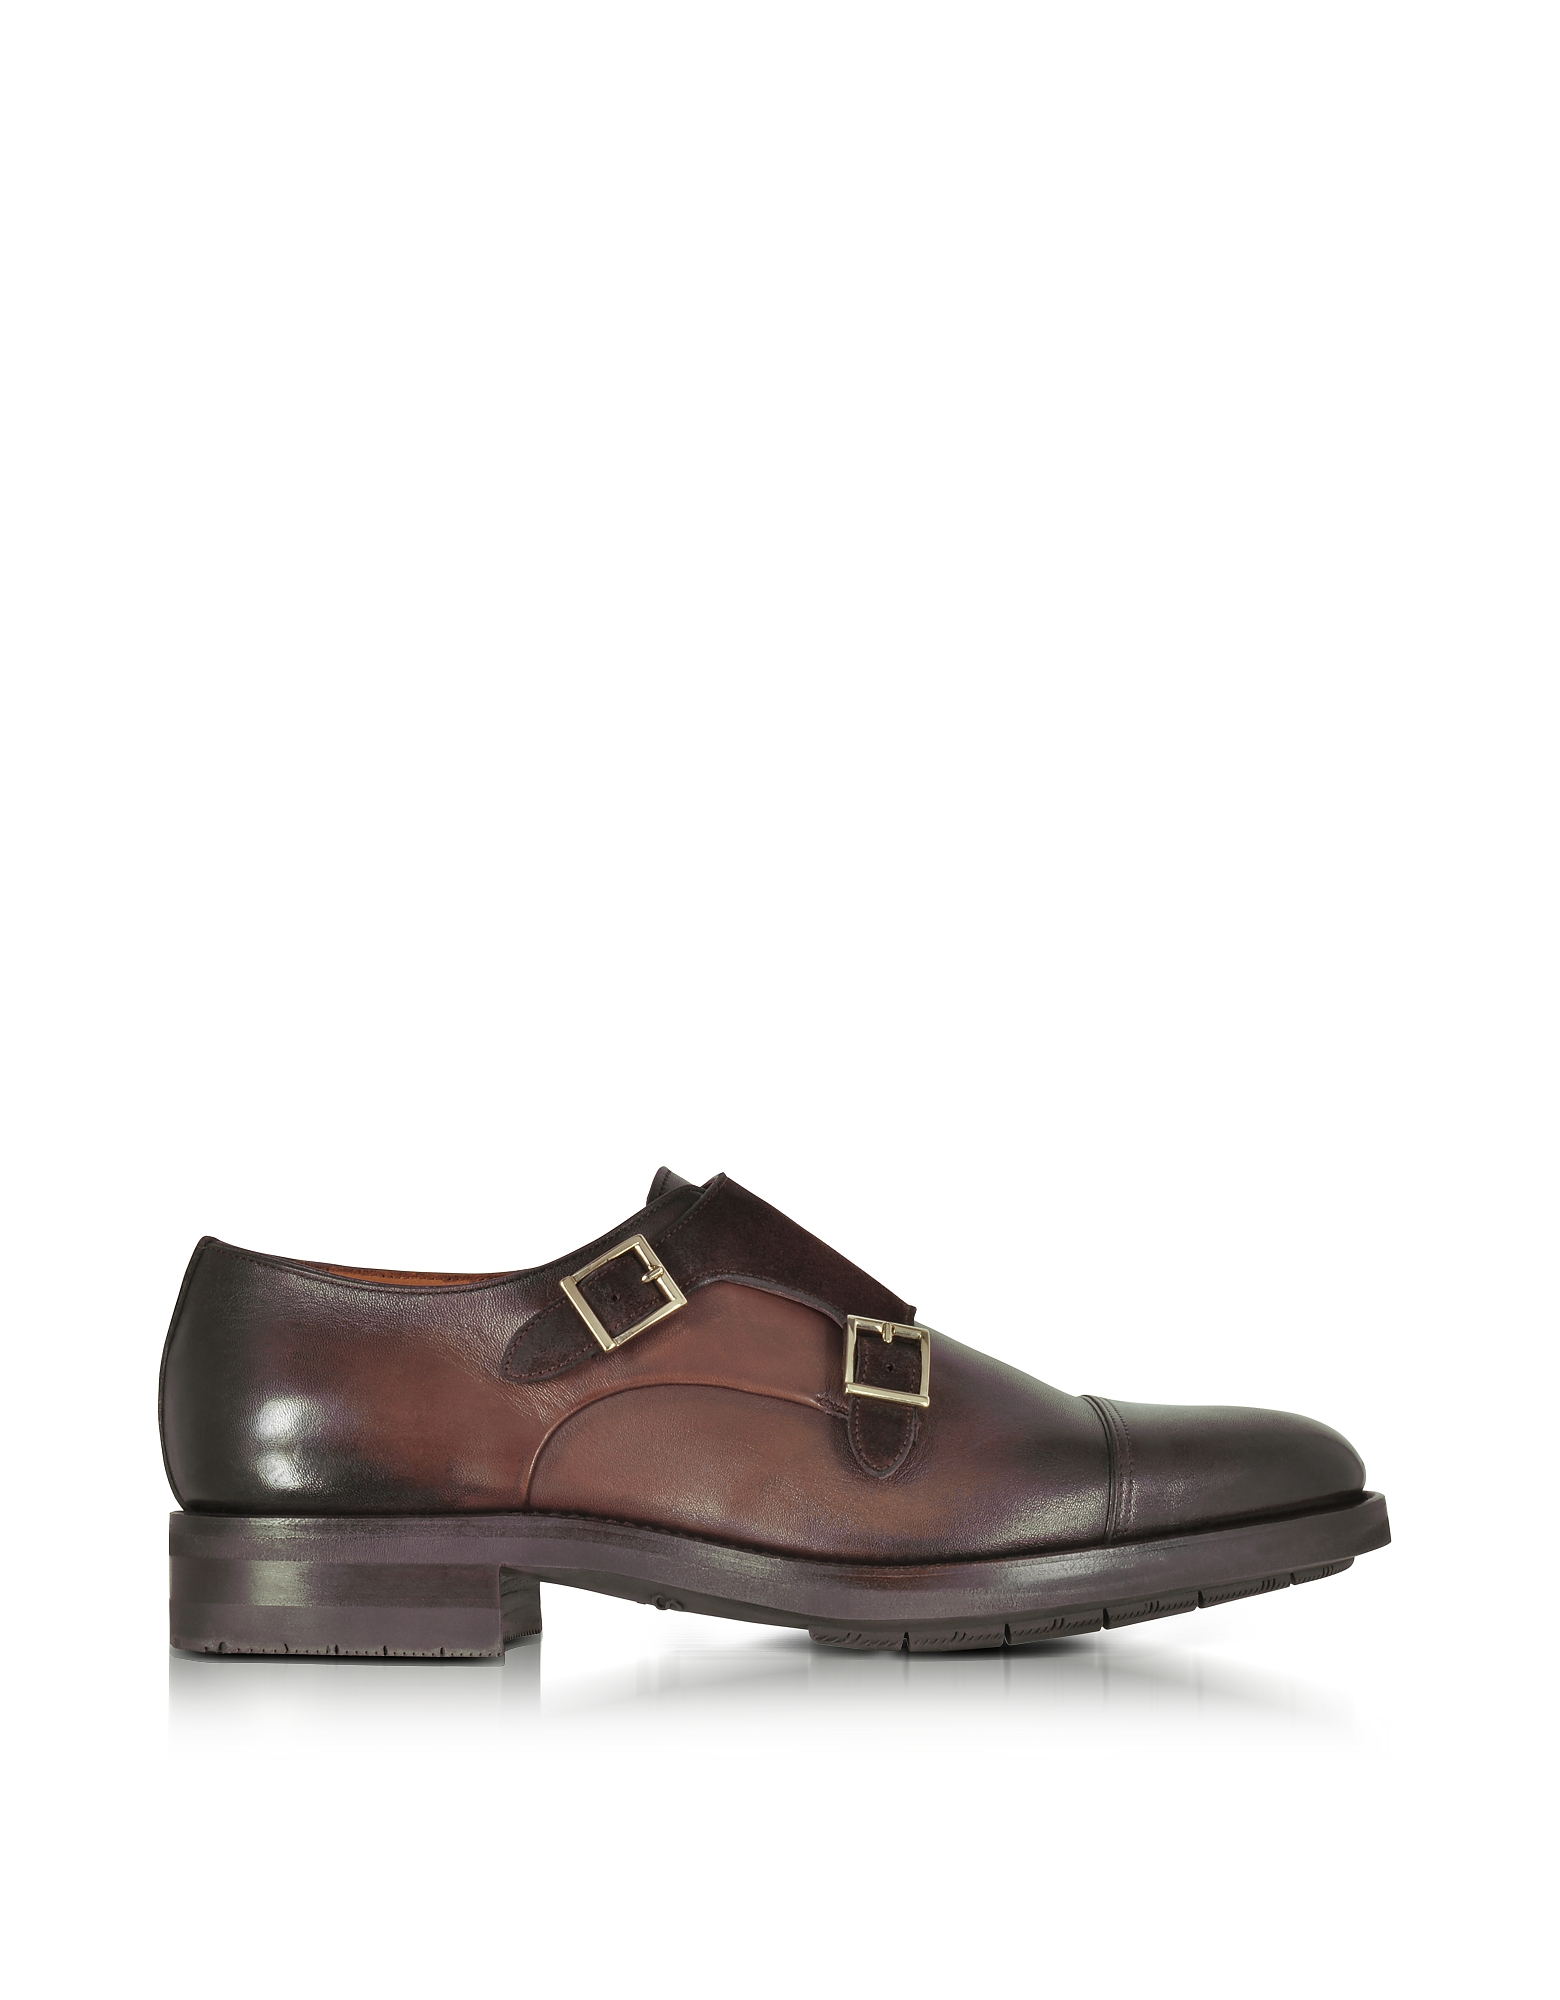 Santoni Shoes, Brown Suede and Leather Double Monk Strap Shoes